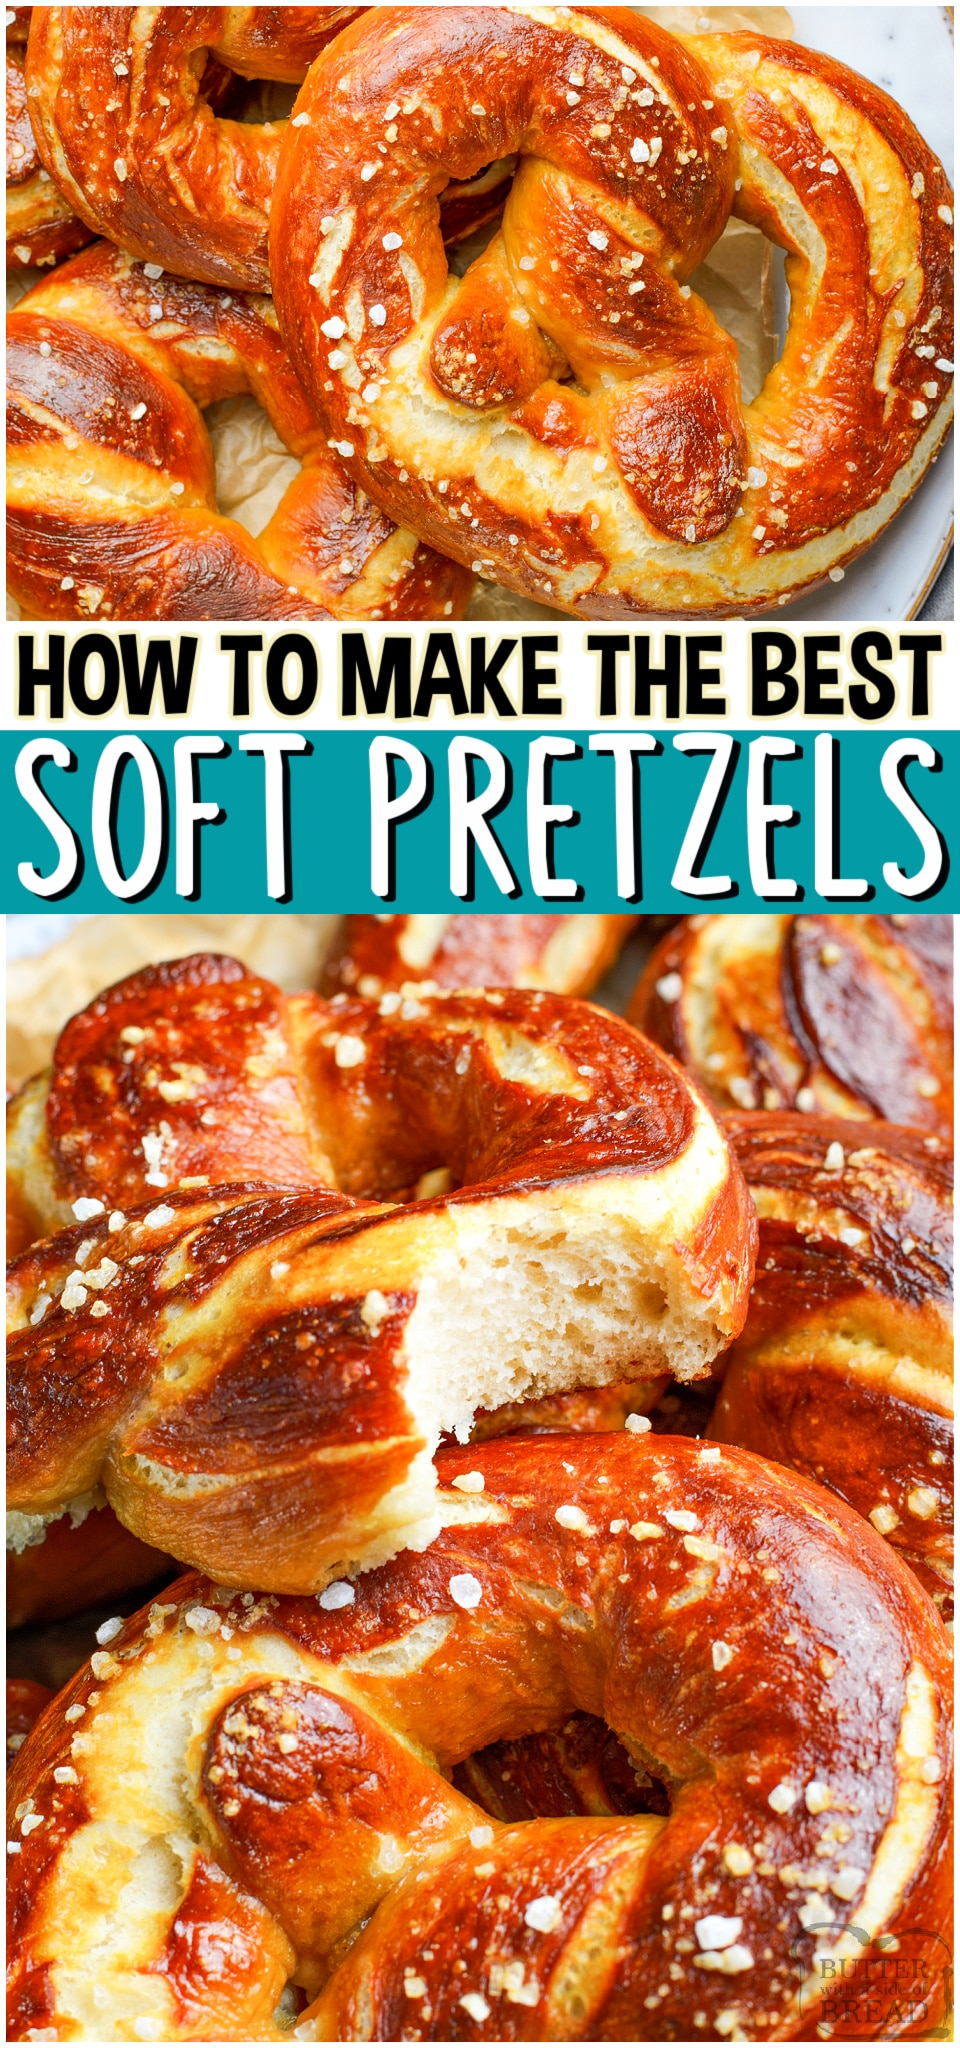 Homemade Soft Pretzels recipemade with pantry ingredients & SO delicious! Step-by-step instructions for how to make soft pretzels and an easy cheese sauce to dip! #pretzels #softpretzels #homemade #howtomake #easyrecipe from BUTTER WITH A SIDE OF BREAD